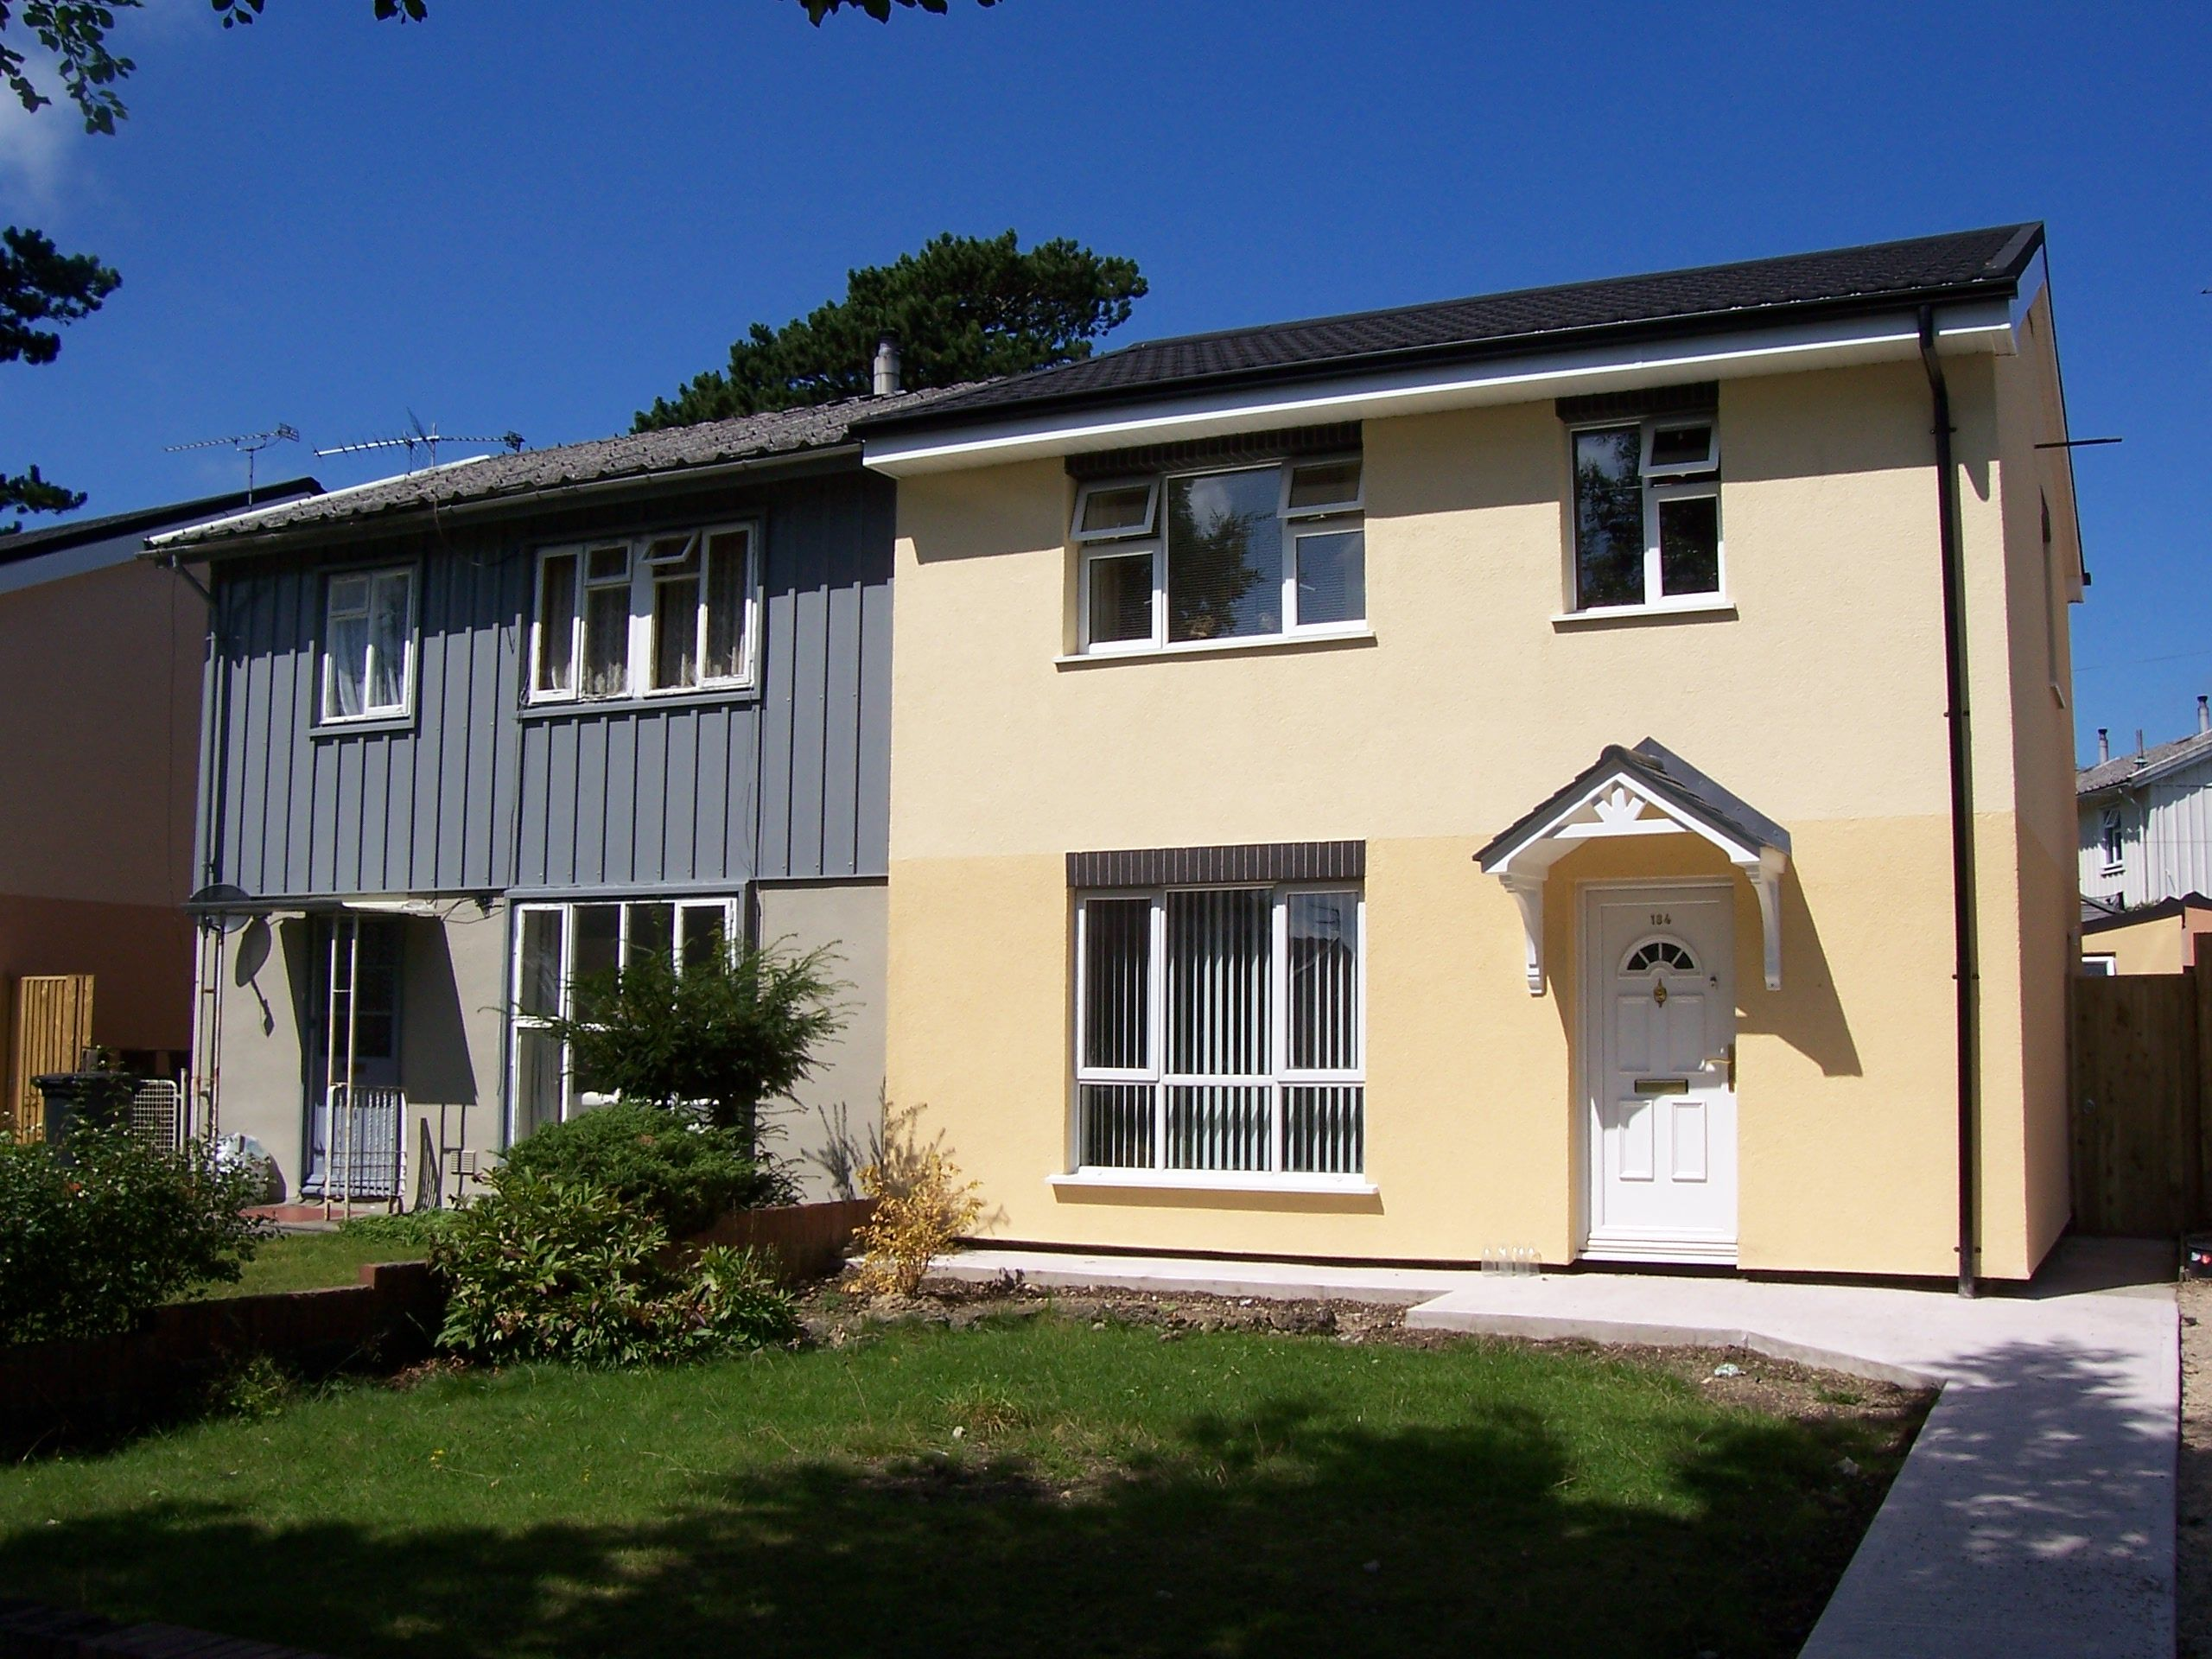 Externalwallinsulation On A Bisf Property In Cardiff South Wales Www Energysavinggrants Org S External Wall Insulation Wall Insulation External Insulation